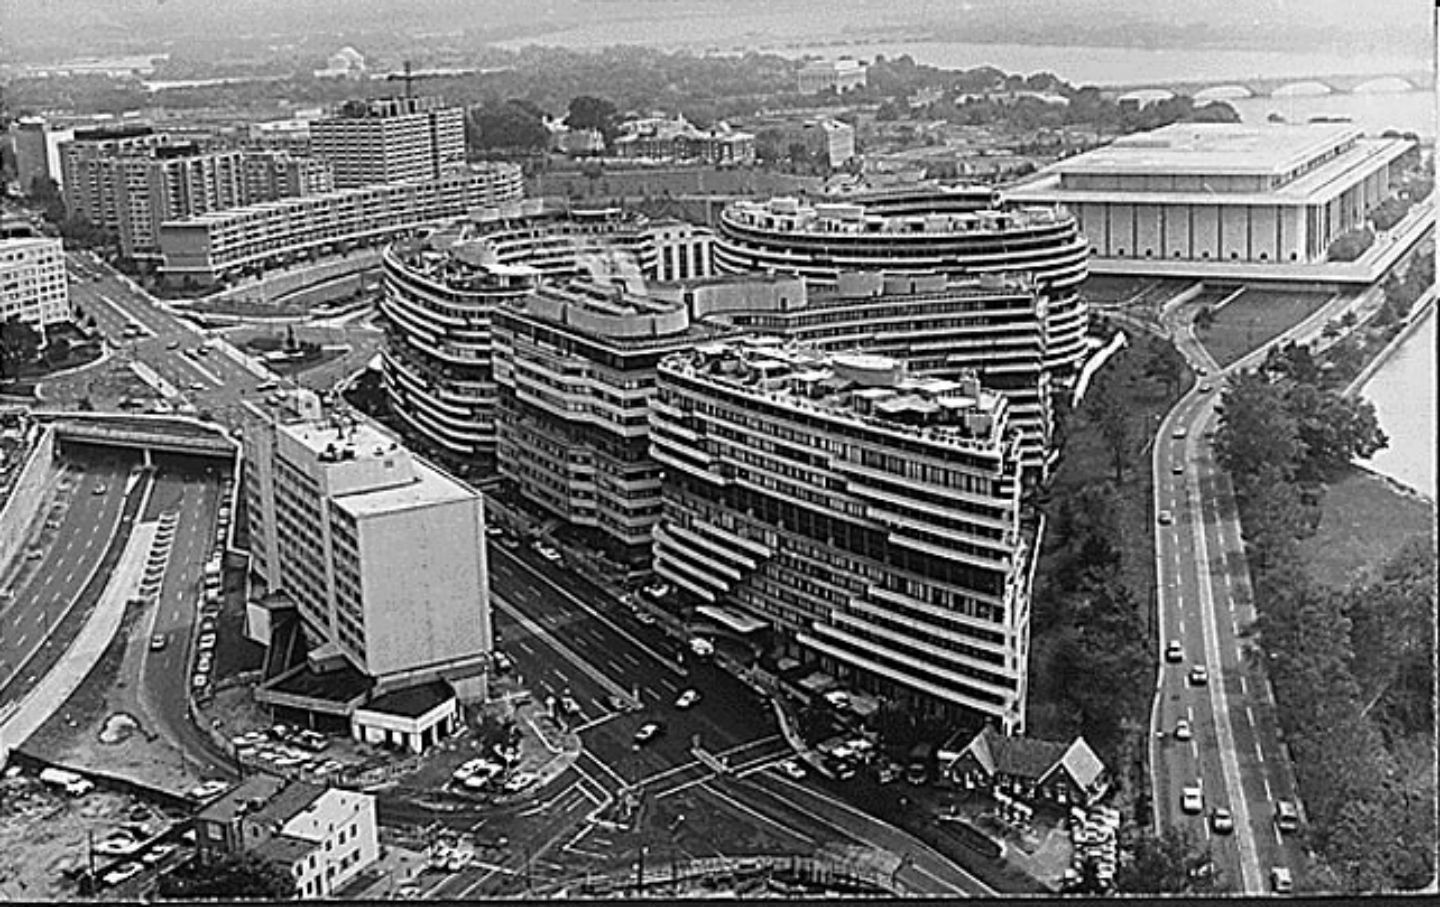 June 17 1972 The Watergate Scandal Begins As Nixon Campaign